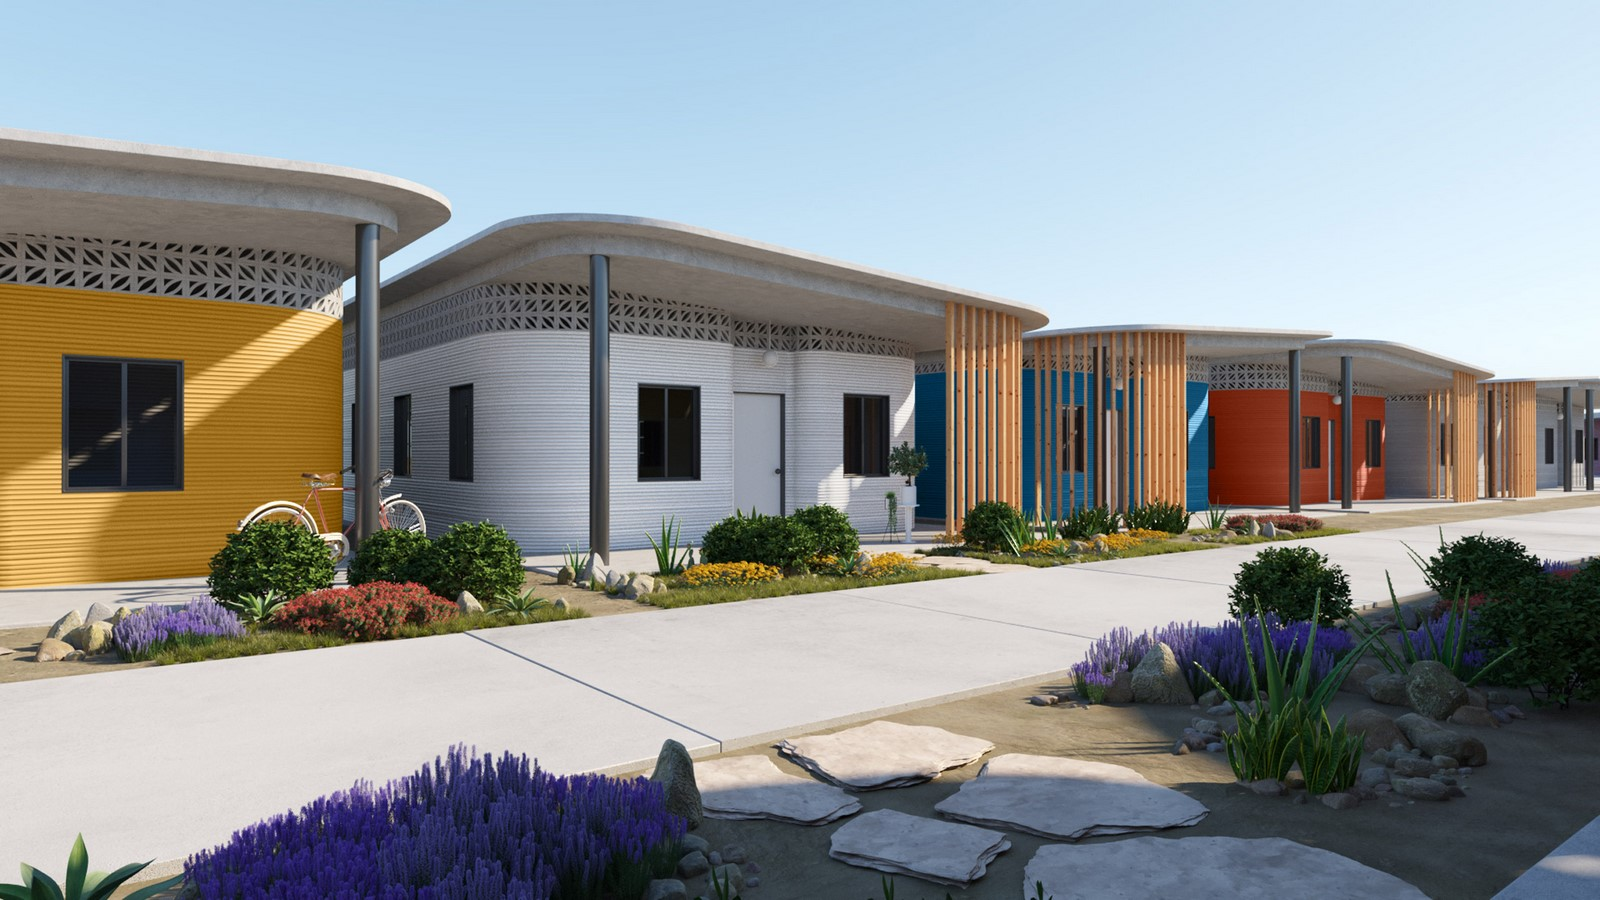 Concrete 3D Printing: 10 Residential Projects around the World - Sheet15